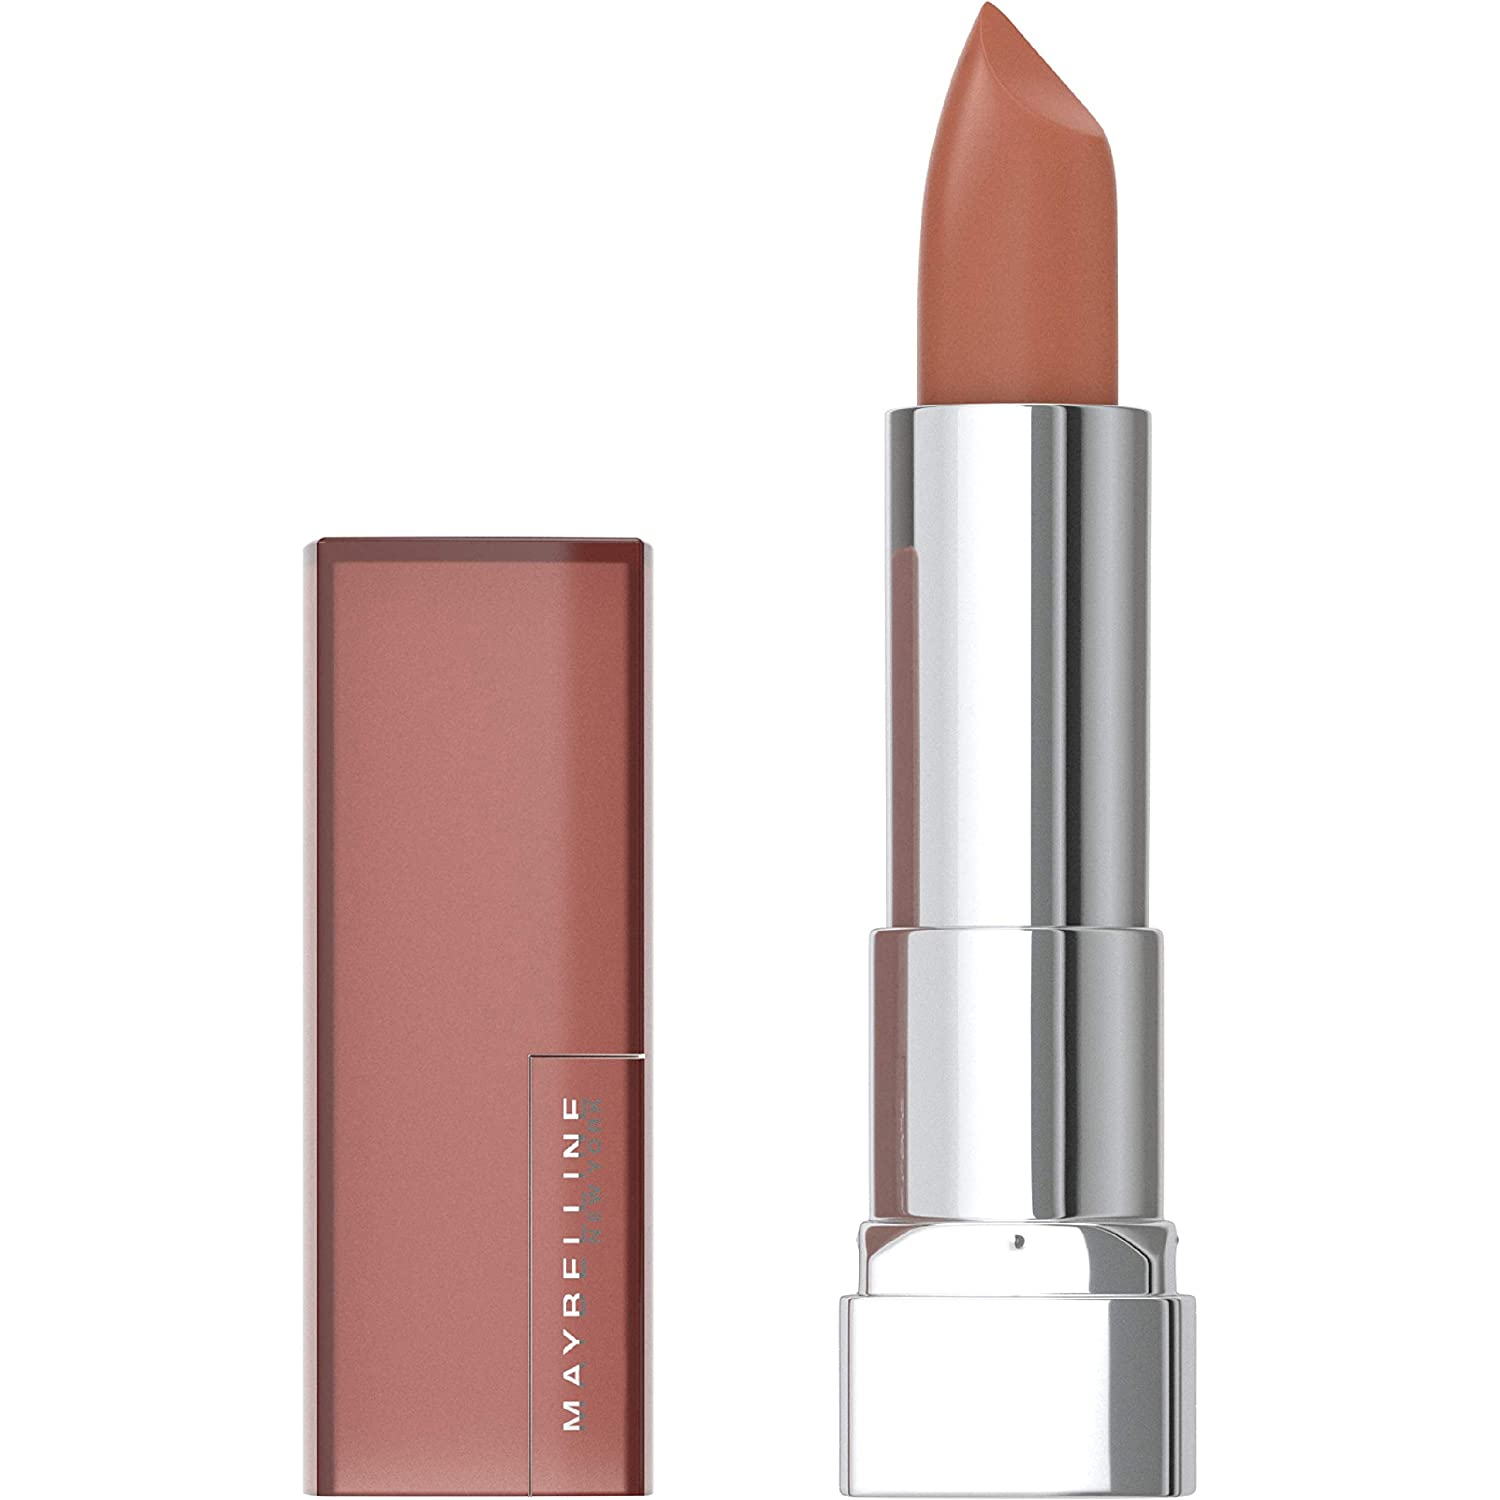 Maybelline Color Sensational Lipstick, Lip Makeup, Matte Finish, Hydrating Lipstick, Nude, Pink, Red, Plum Lip Color, Raw Chocolate, 0.15 oz. (Packaging May Vary)